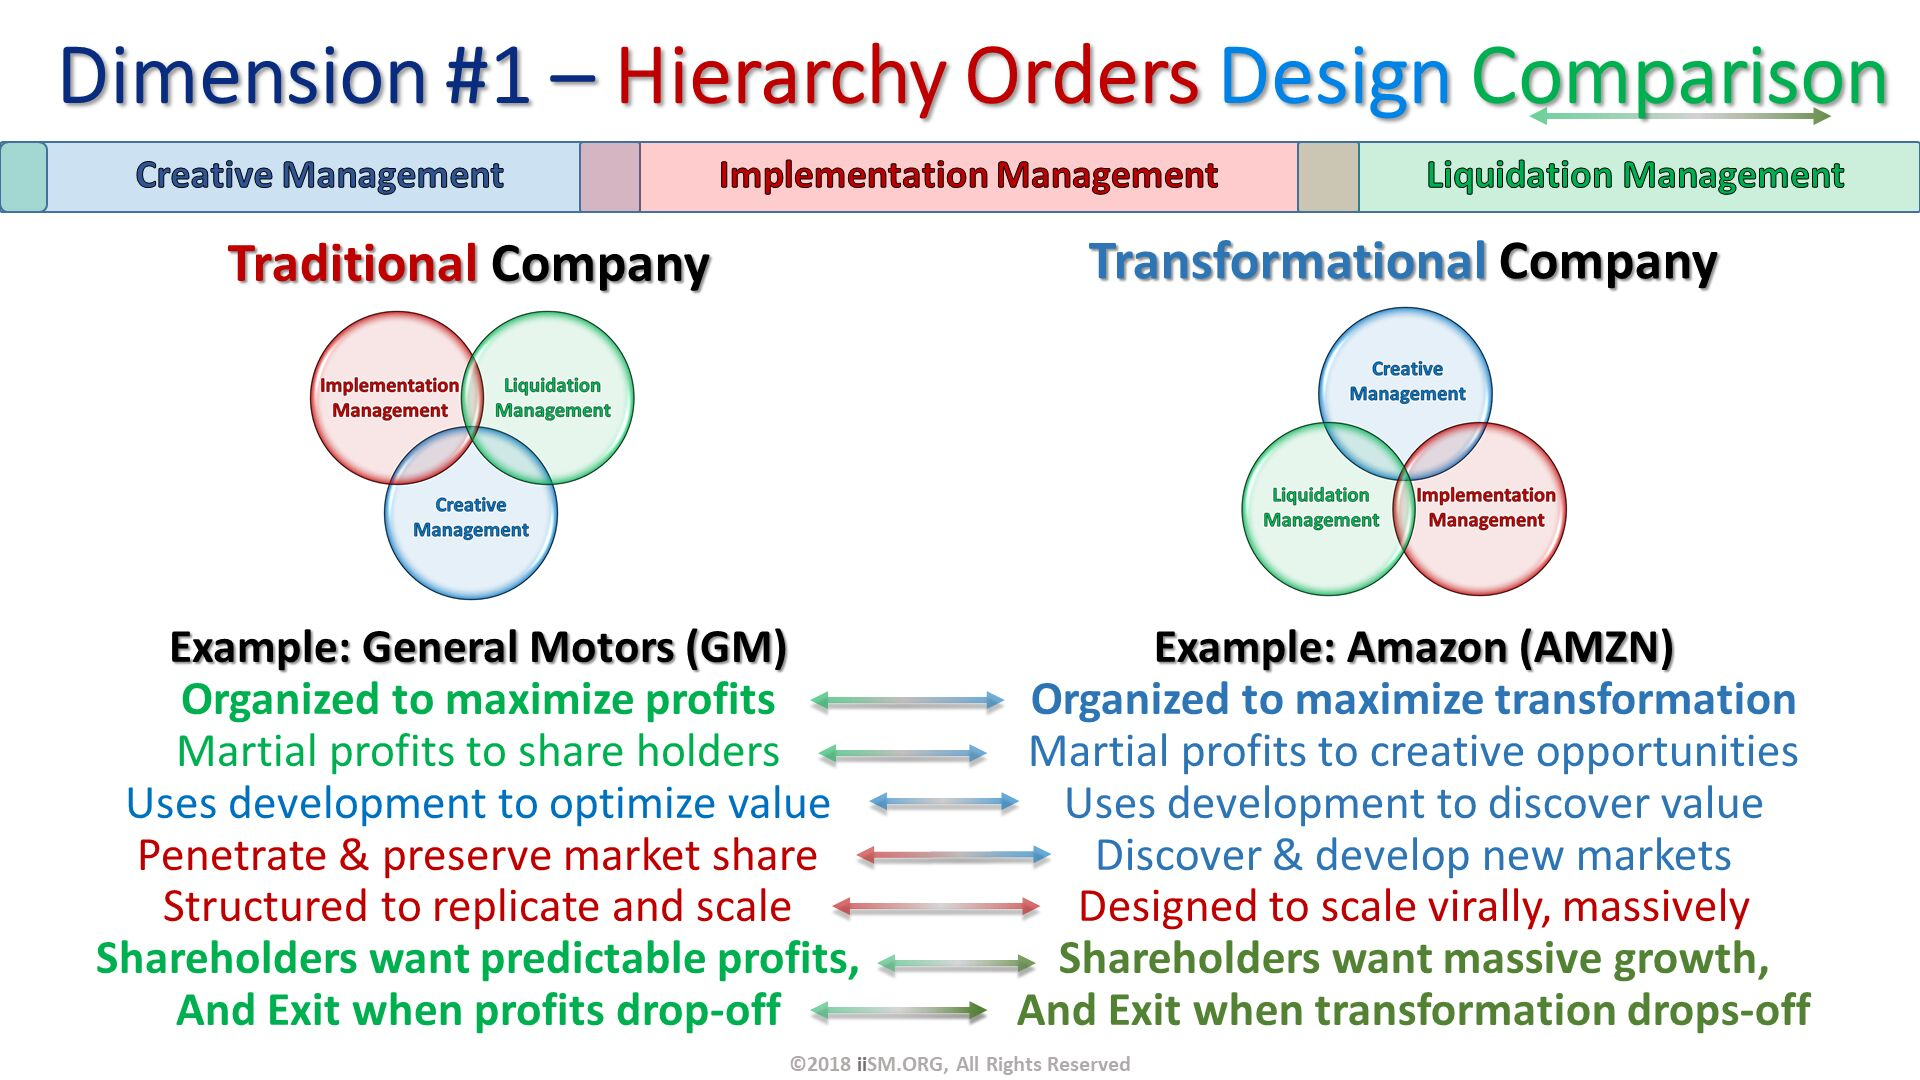 Dimension #1 – Hierarchy Orders Design Comparison. Traditional Company. Transformational Company. ©2018 iiSM.ORG, All Rights Reserved. Example: General Motors (GM) Organized to maximize profits Martial profits to share holders Uses development to optimize value Penetrate & preserve market share Structured to replicate and scale Shareholders want predictable profits, And Exit when profits drop-off. Example: Amazon (AMZN) Organized to maximize transformation Martial profits to creative opportunities Uses development to discover value Discover & develop new markets Designed to scale virally, massively Shareholders want massive growth, And Exit when transformation drops-off.